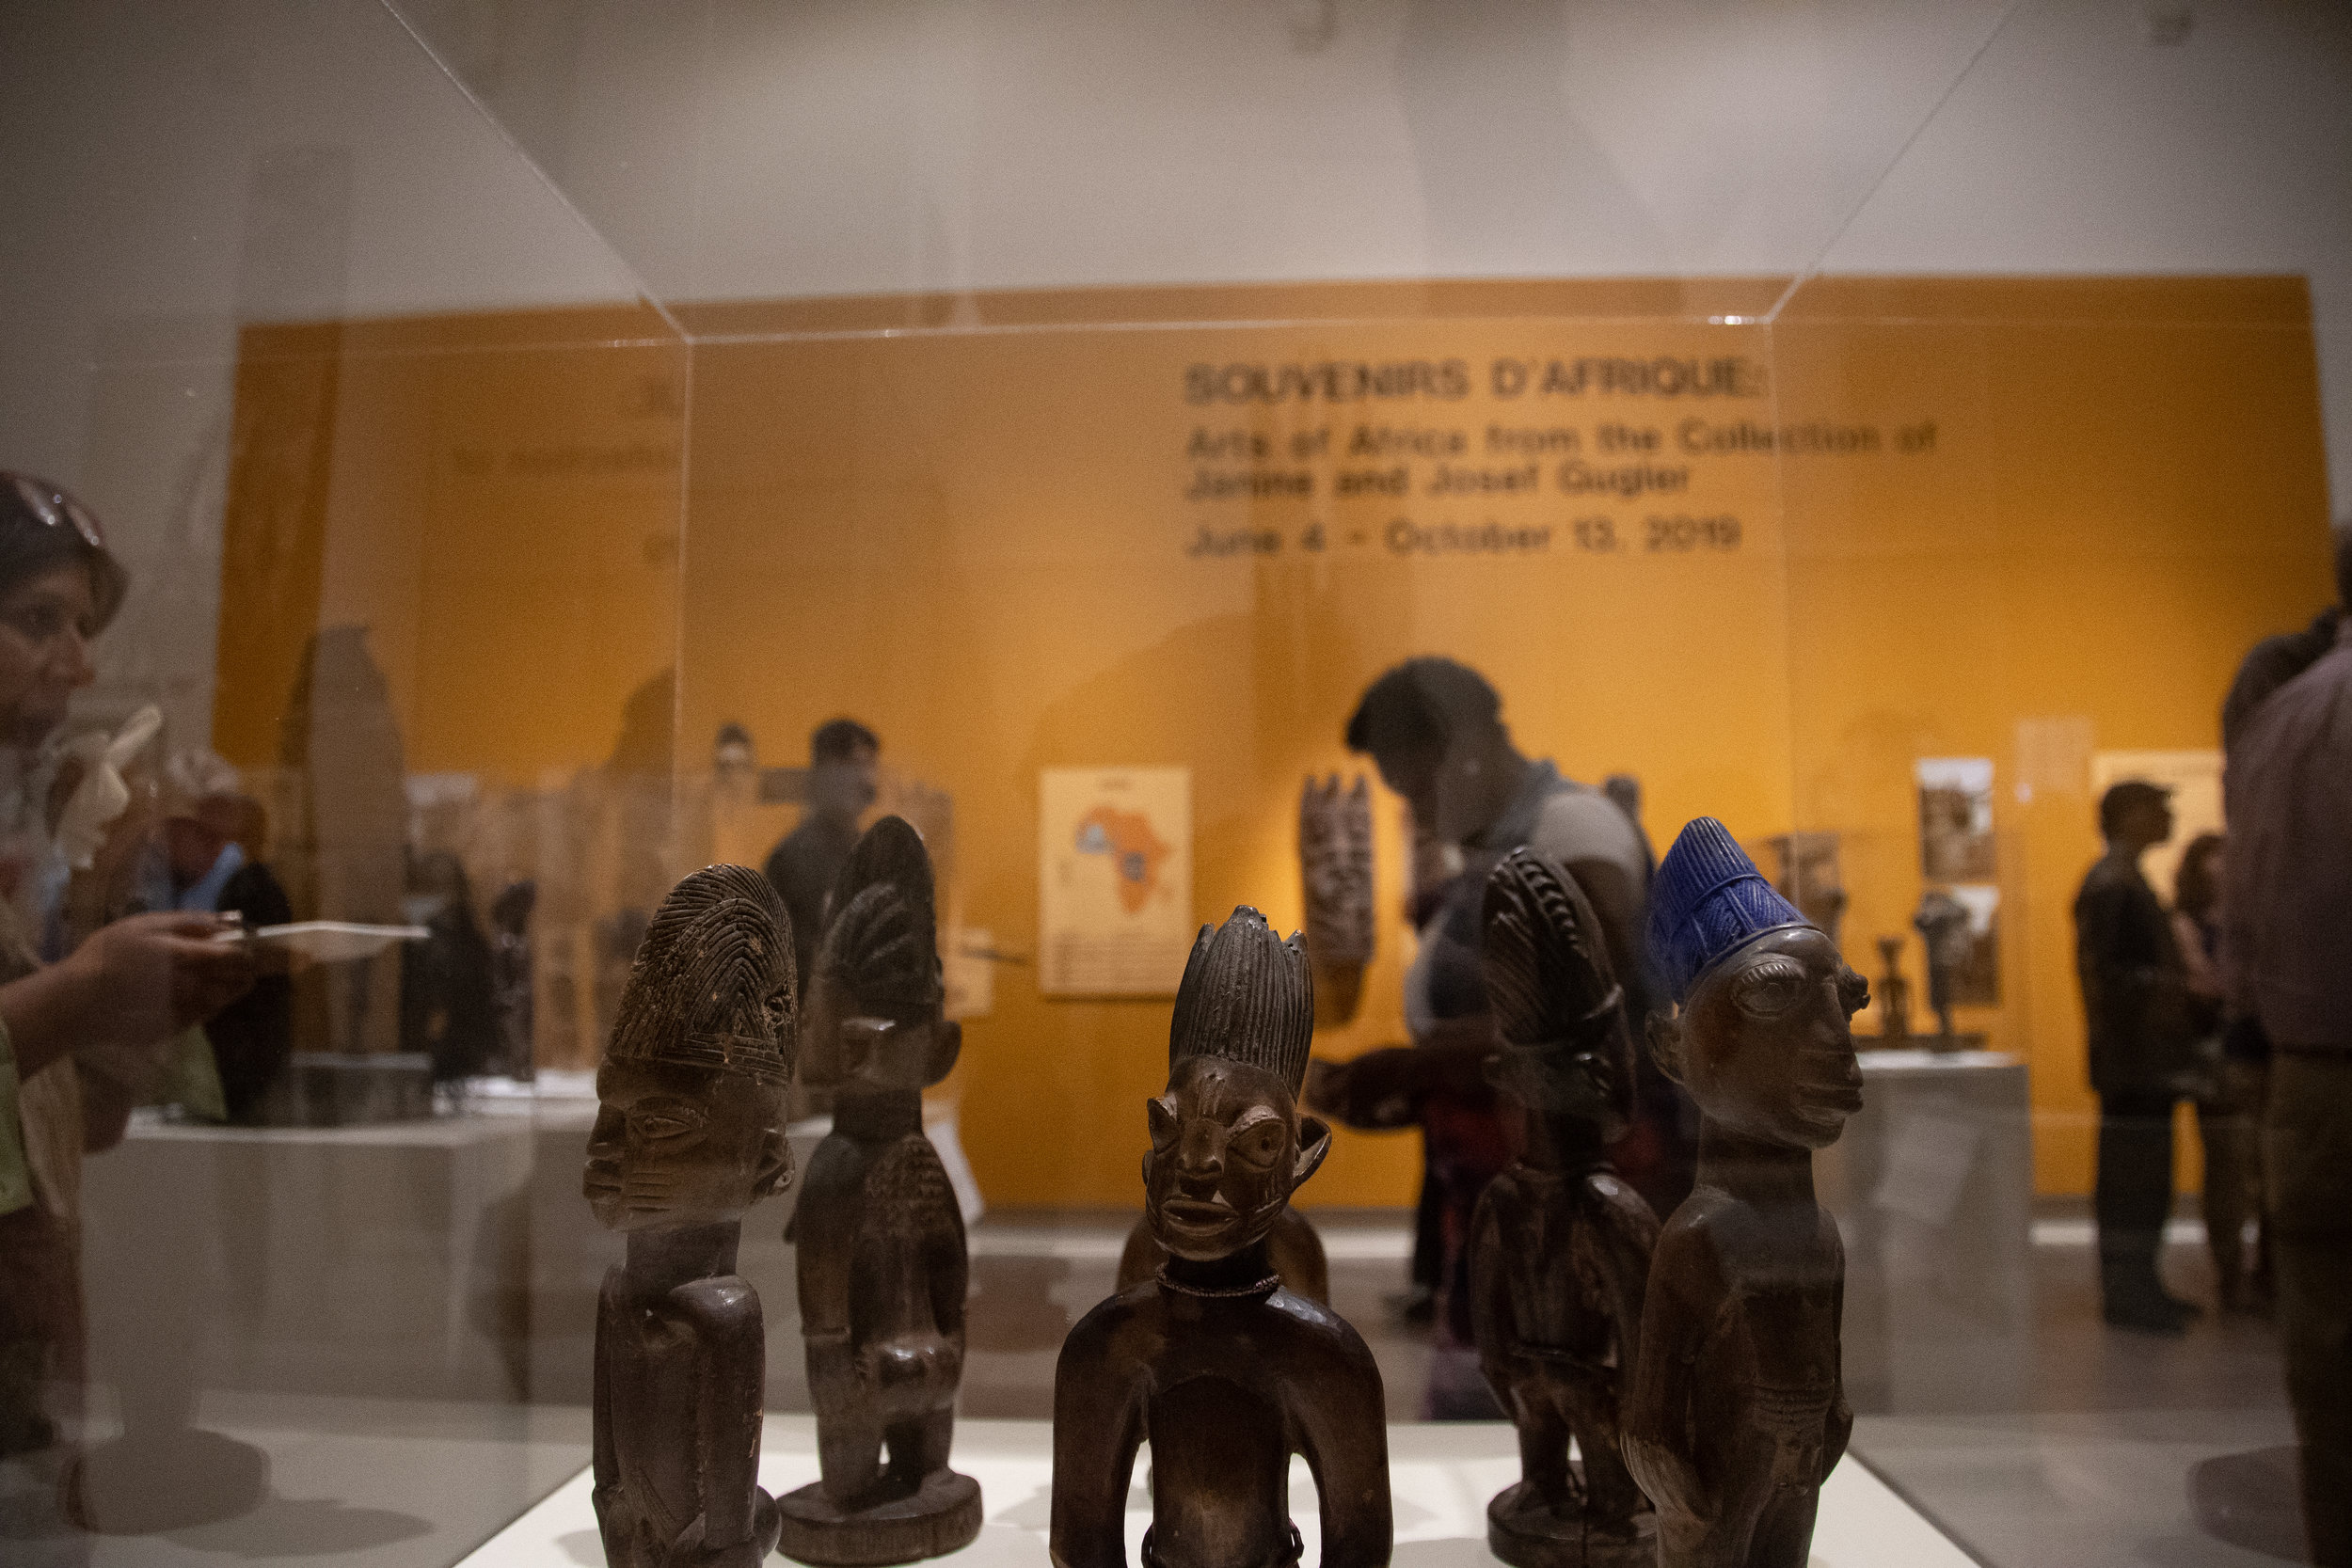 """The Benton's latest two exhibitions are titled """"Souvenirs D'Afrique: Arts of Africa from the Collection of Janine and Josef Gugler"""" and """"The Lure of Cuba: Reginald Marsh's Tropical Watercolors, 1924-1930.""""  Photos by Avery Bikerman/The Daily Campus"""